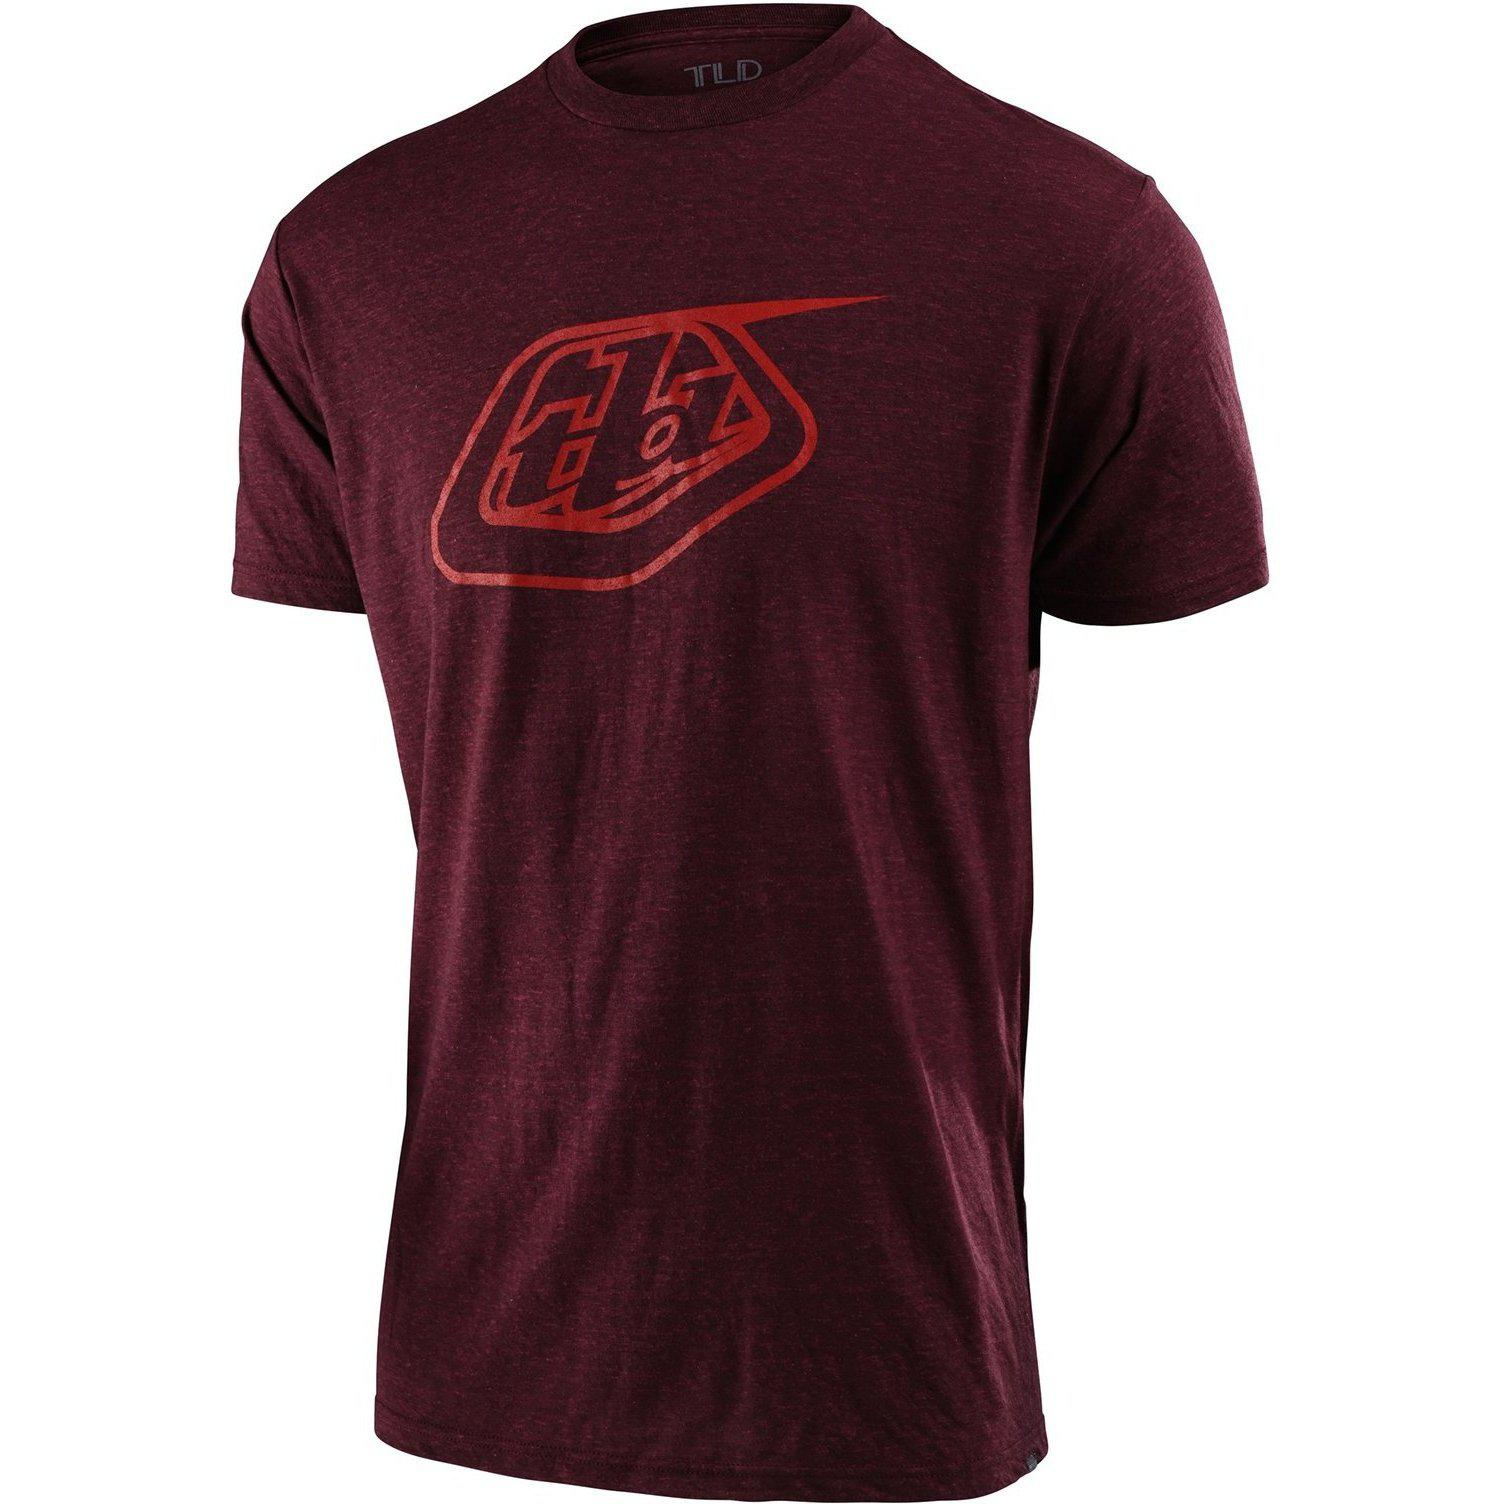 Troy Lee Designs-Troy Lee Designs Logo Tee-Sangria-S-TLD701817002-saddleback-elite-performance-cycling